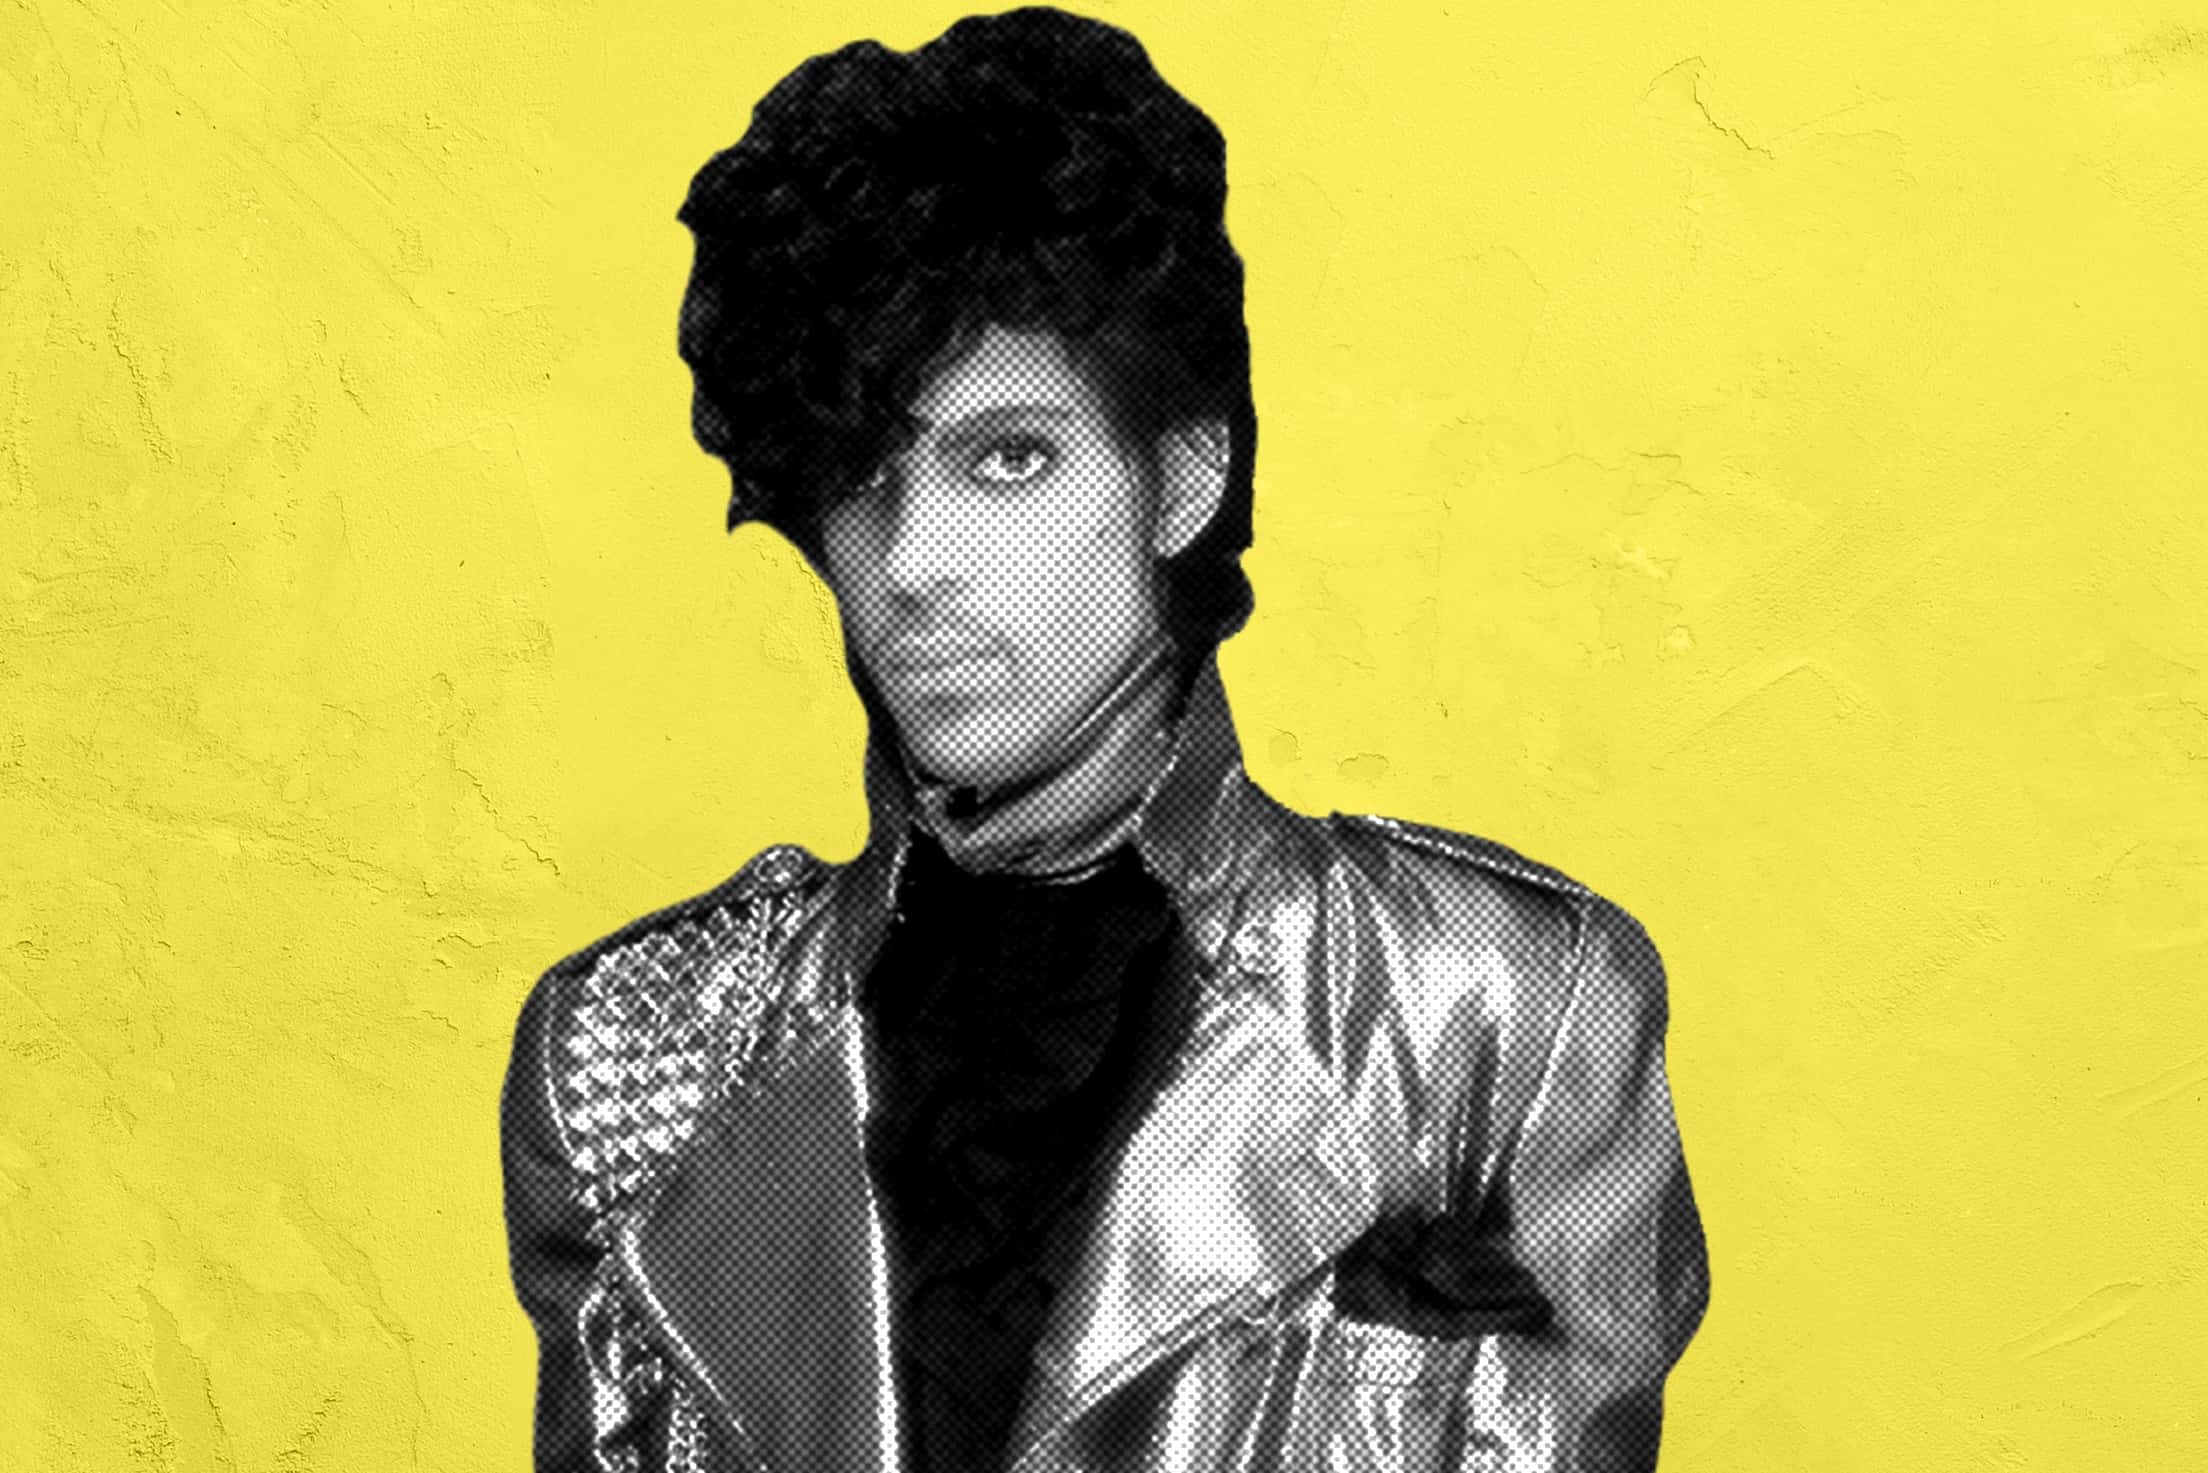 PRINCE TRIBUTE CONCERT TO AIR NEXT MONTH